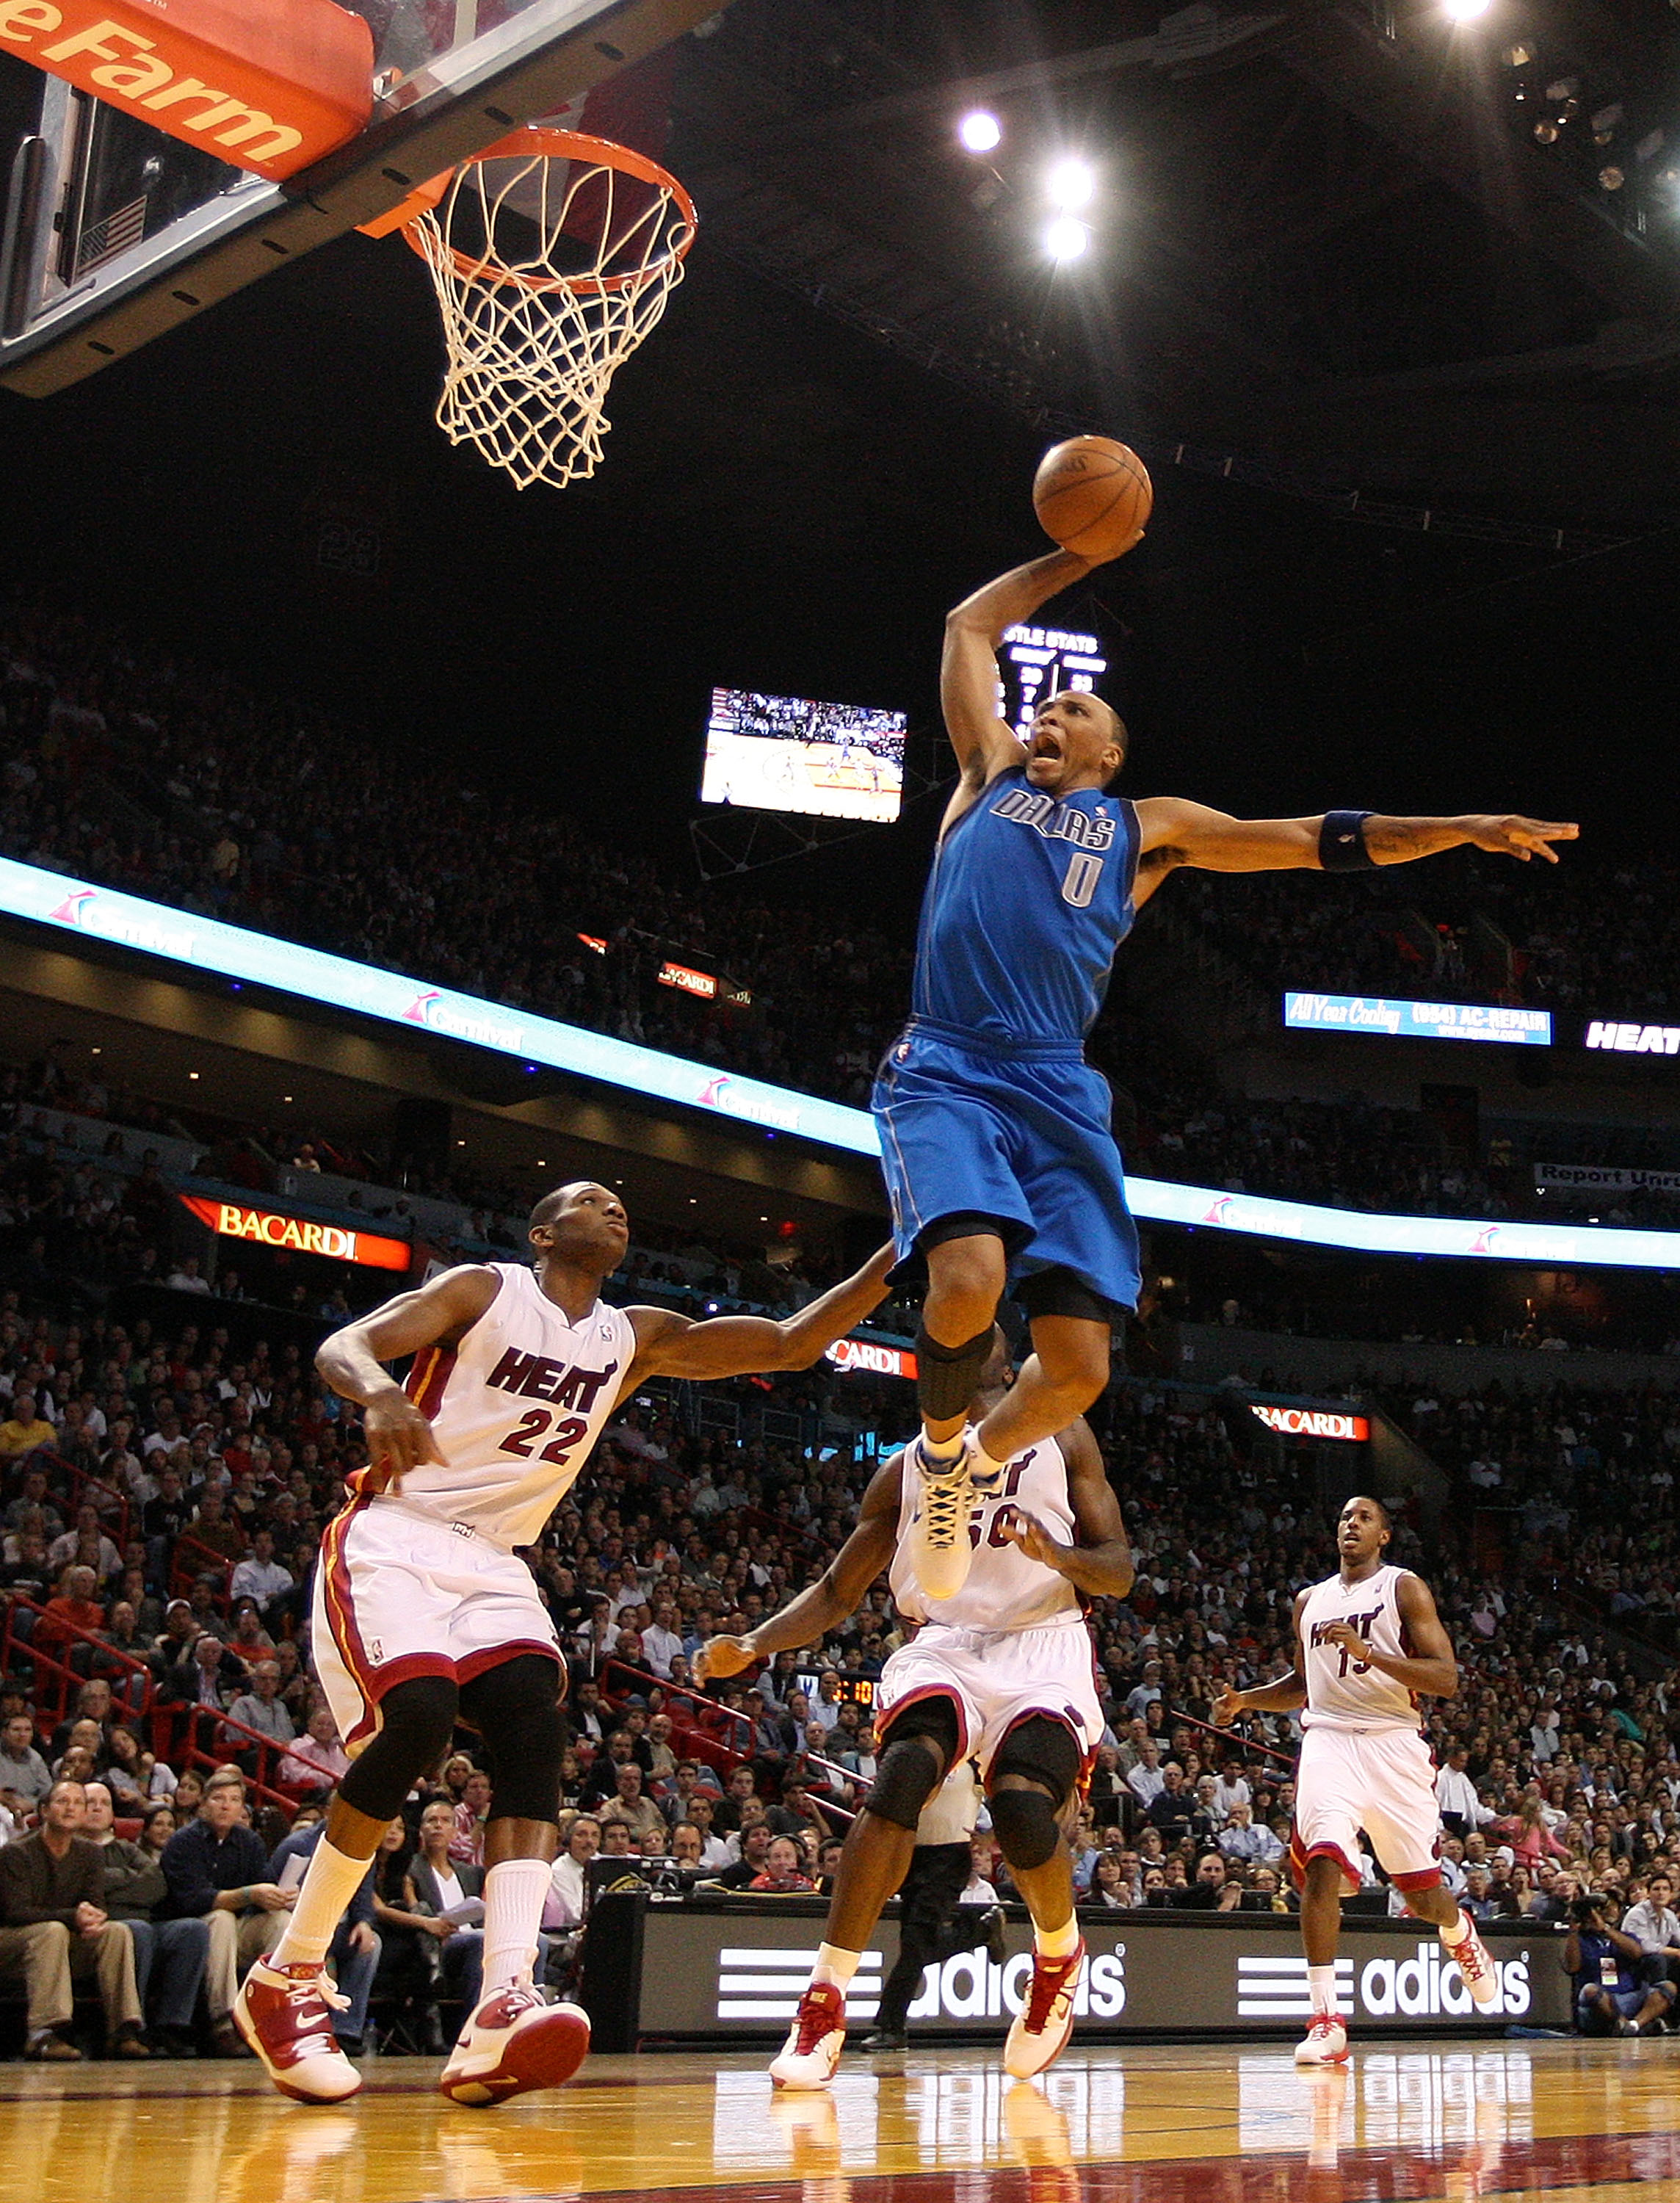 MIAMI, FL - DECEMBER 20:  Shawn Marion #0 of the Dallas Mavericks dunks over James Jones #22 of the Miami Heat during a game at American Airlines Arena on December 20, 2010 in Miami, Florida. NOTE TO USER: User expressly acknowledges and agrees that, by d